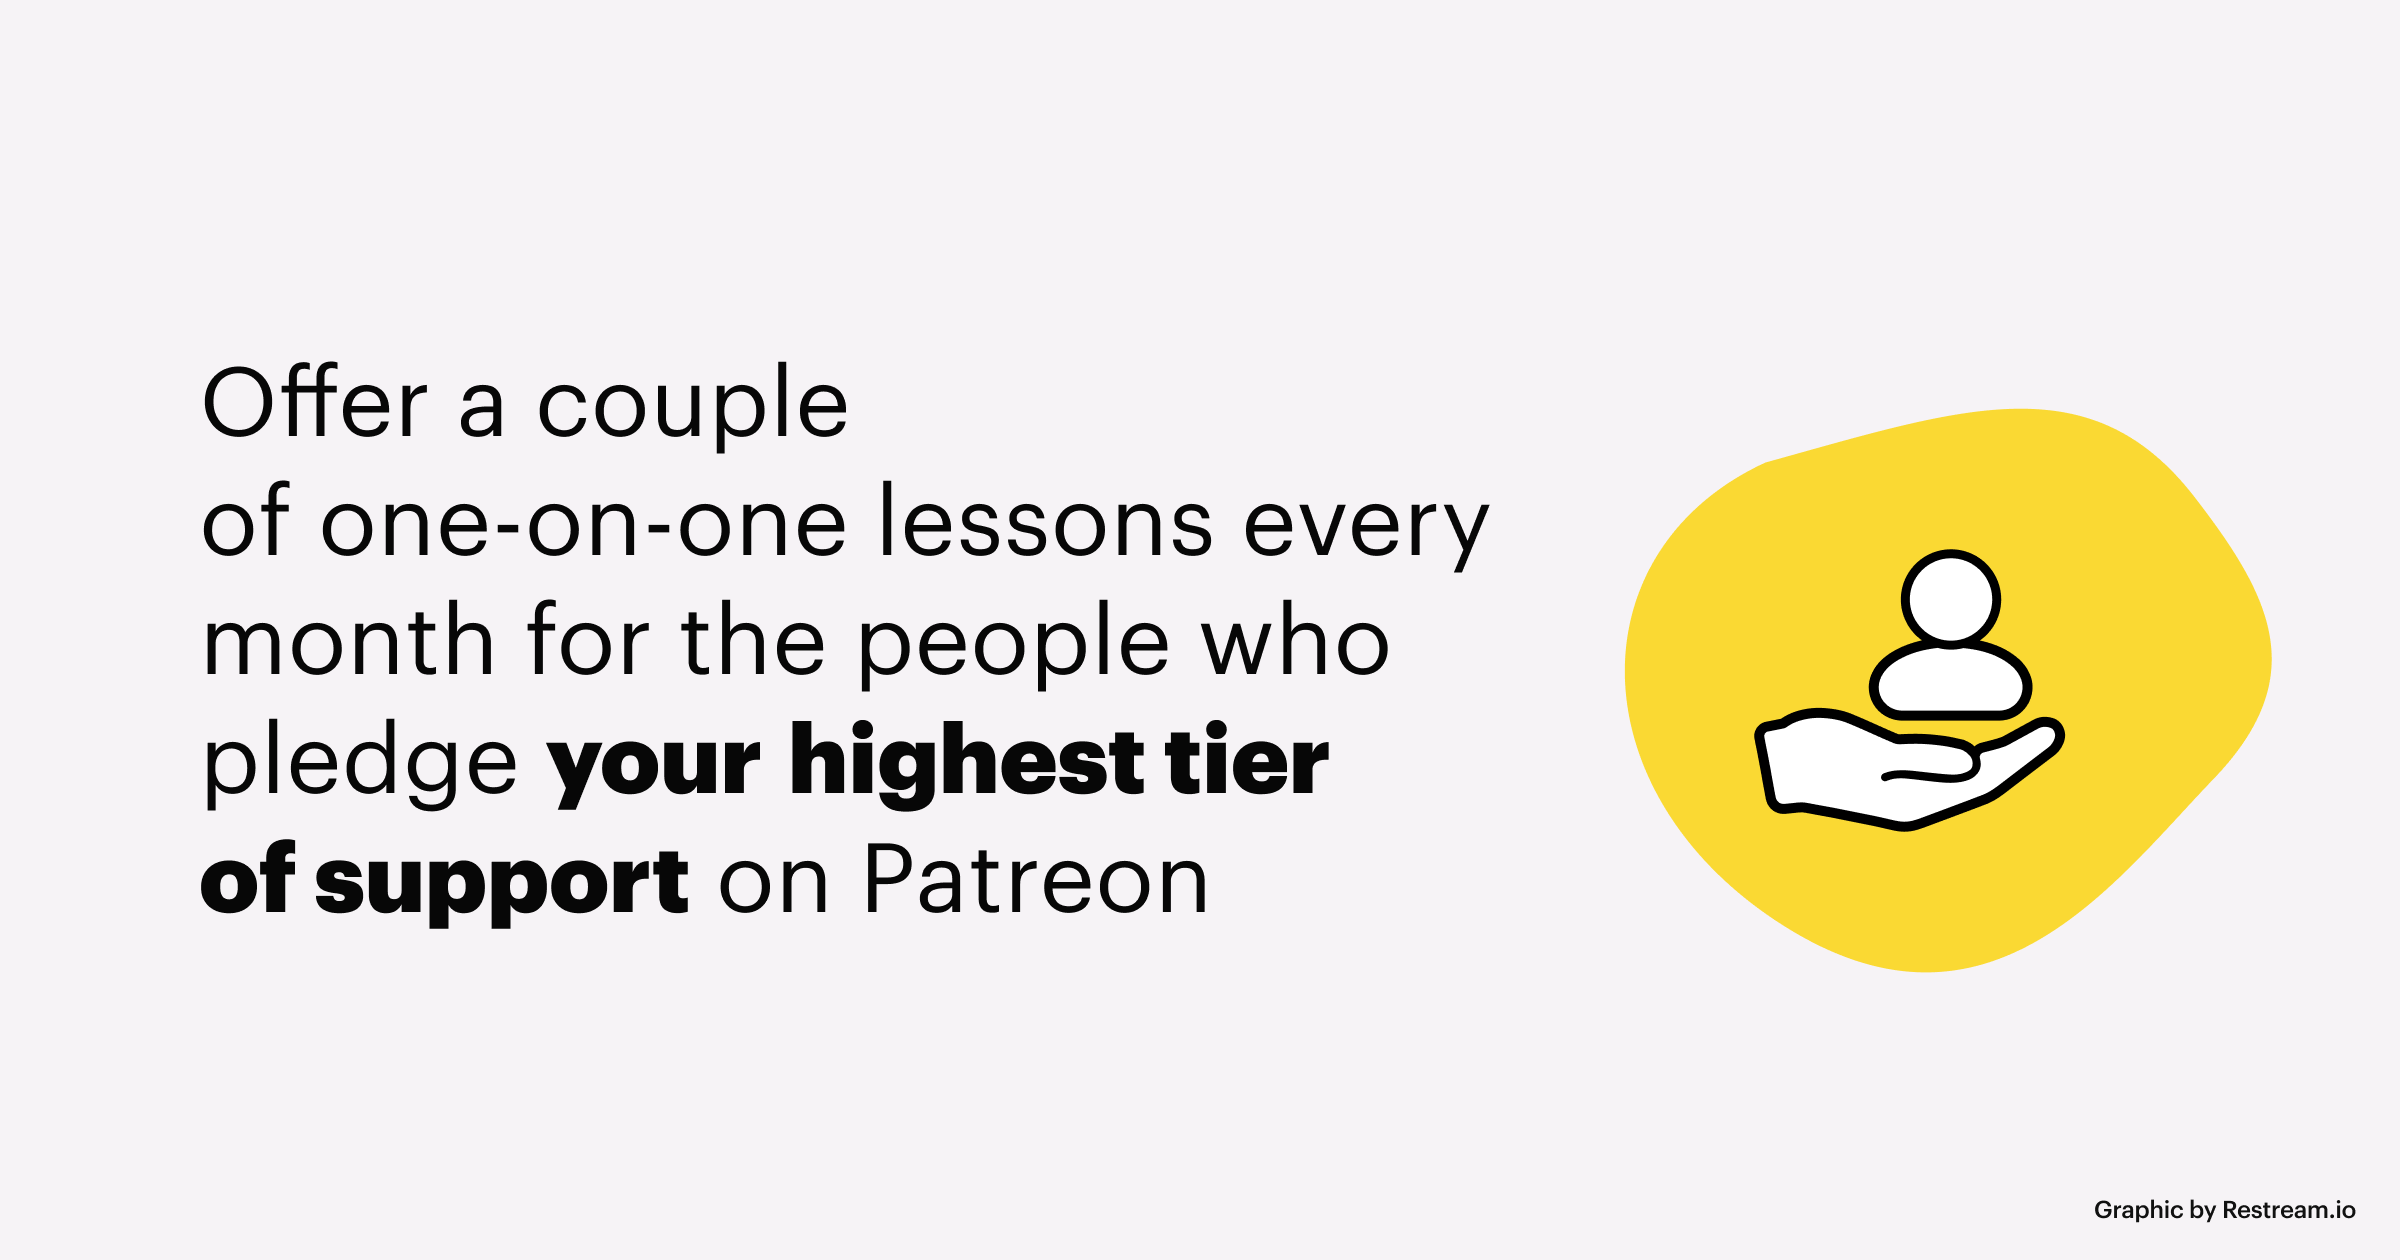 Offer a couple of one-on-one lessons every month for the people who pledge your highest tier of support on Patreon